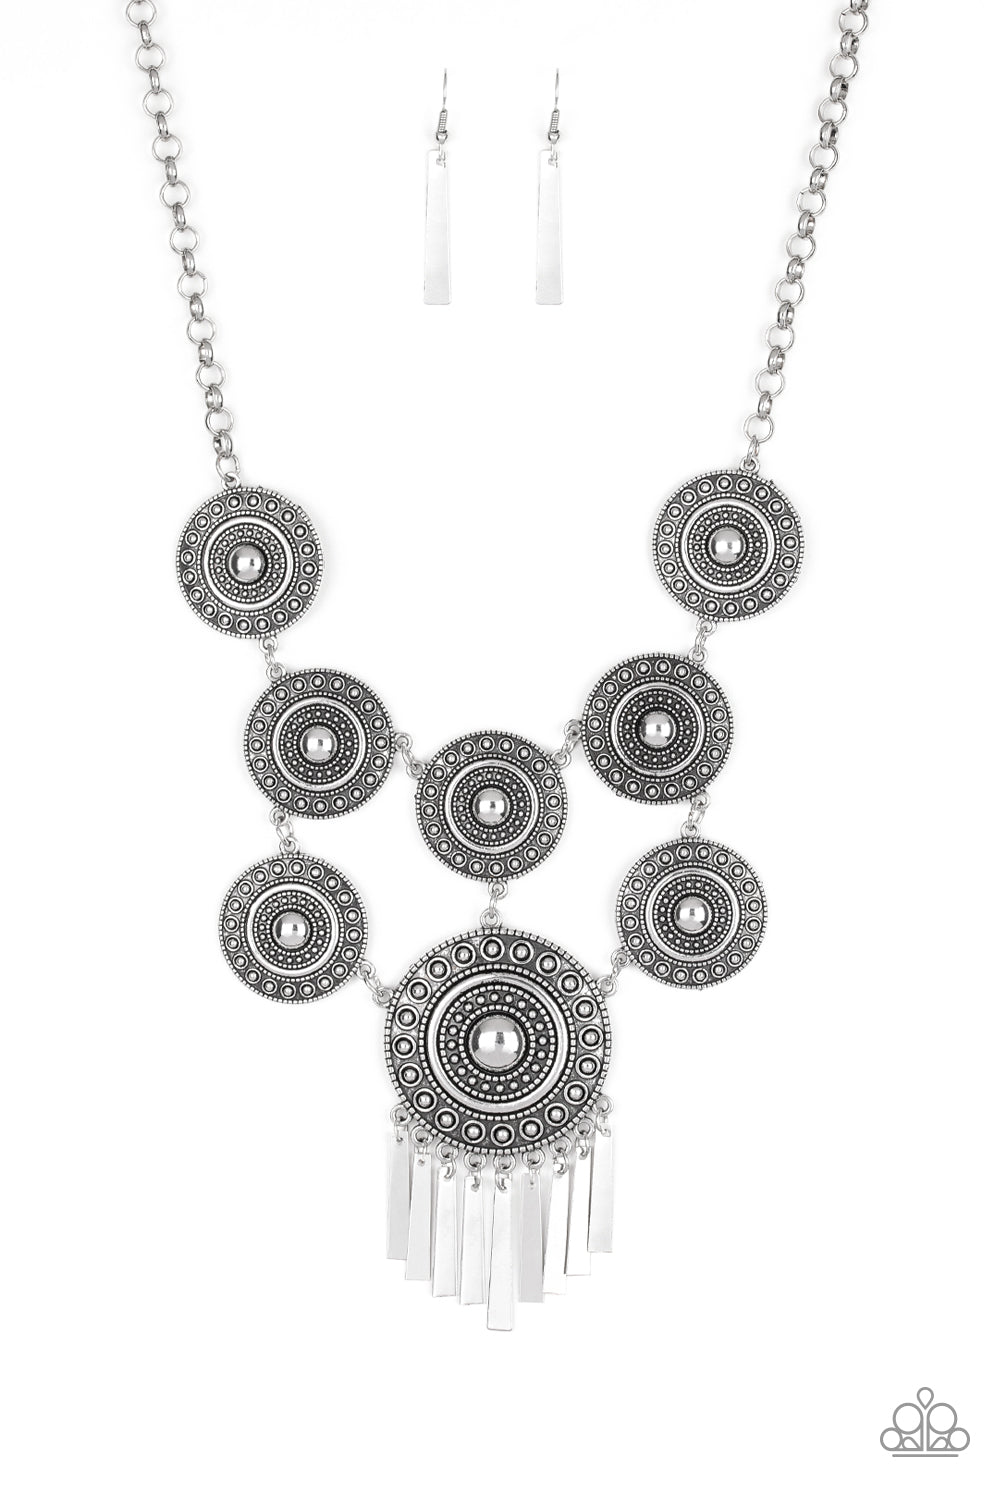 Paparazzi Accessories - Modern Medalist - Silver Necklace Set - JMJ Jewelry Collection